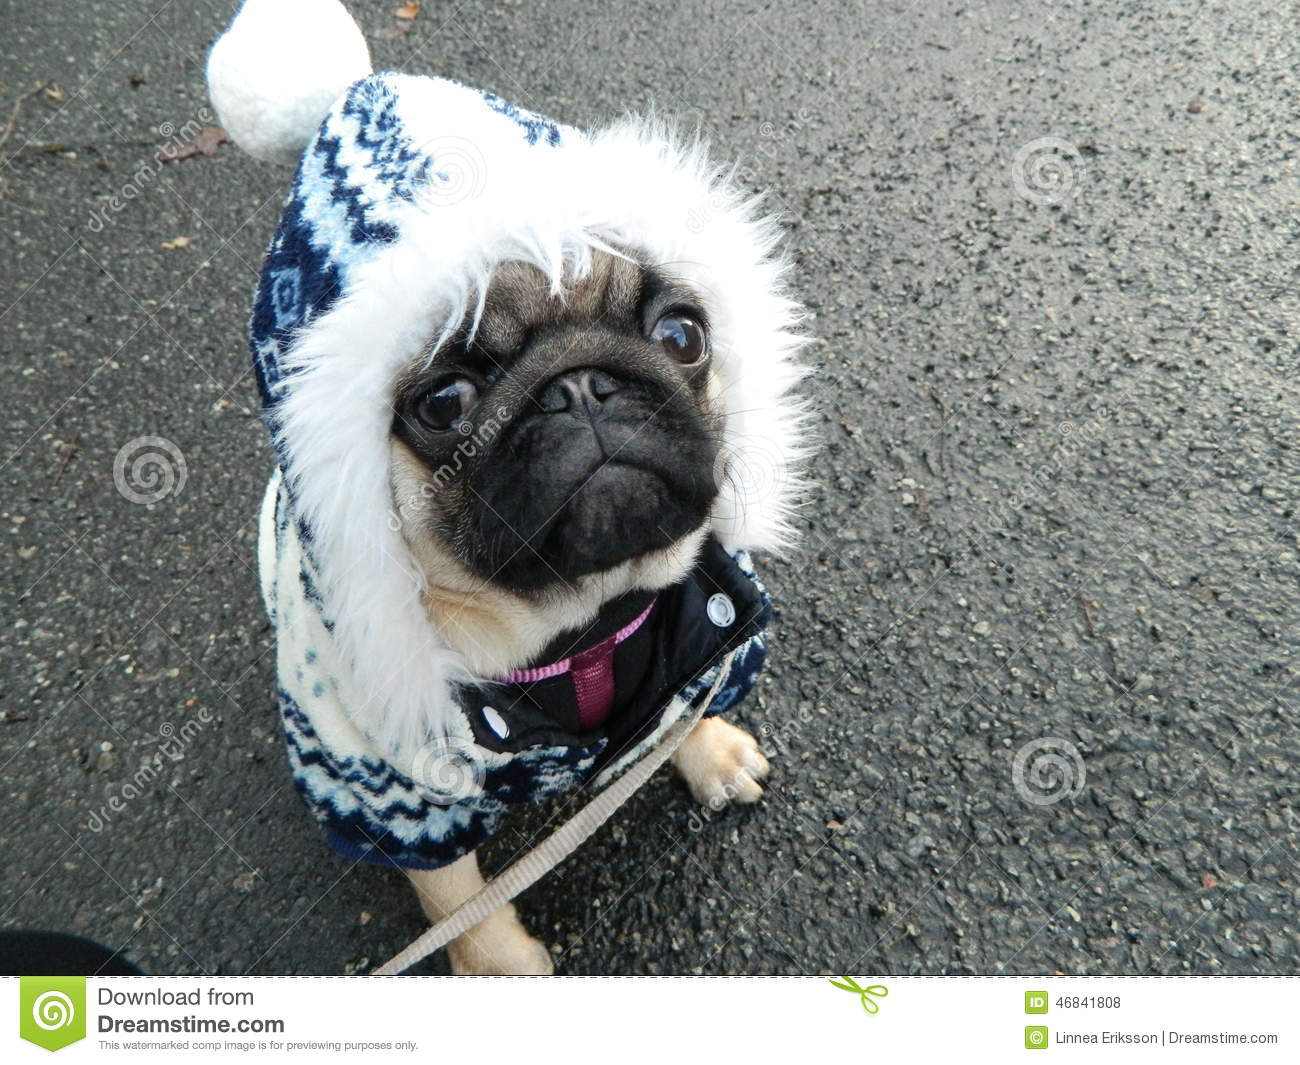 Cute pug puppy in winter outfit & Cute Pug Puppy In Winter Outfit Stock Illustration - Illustration of ...